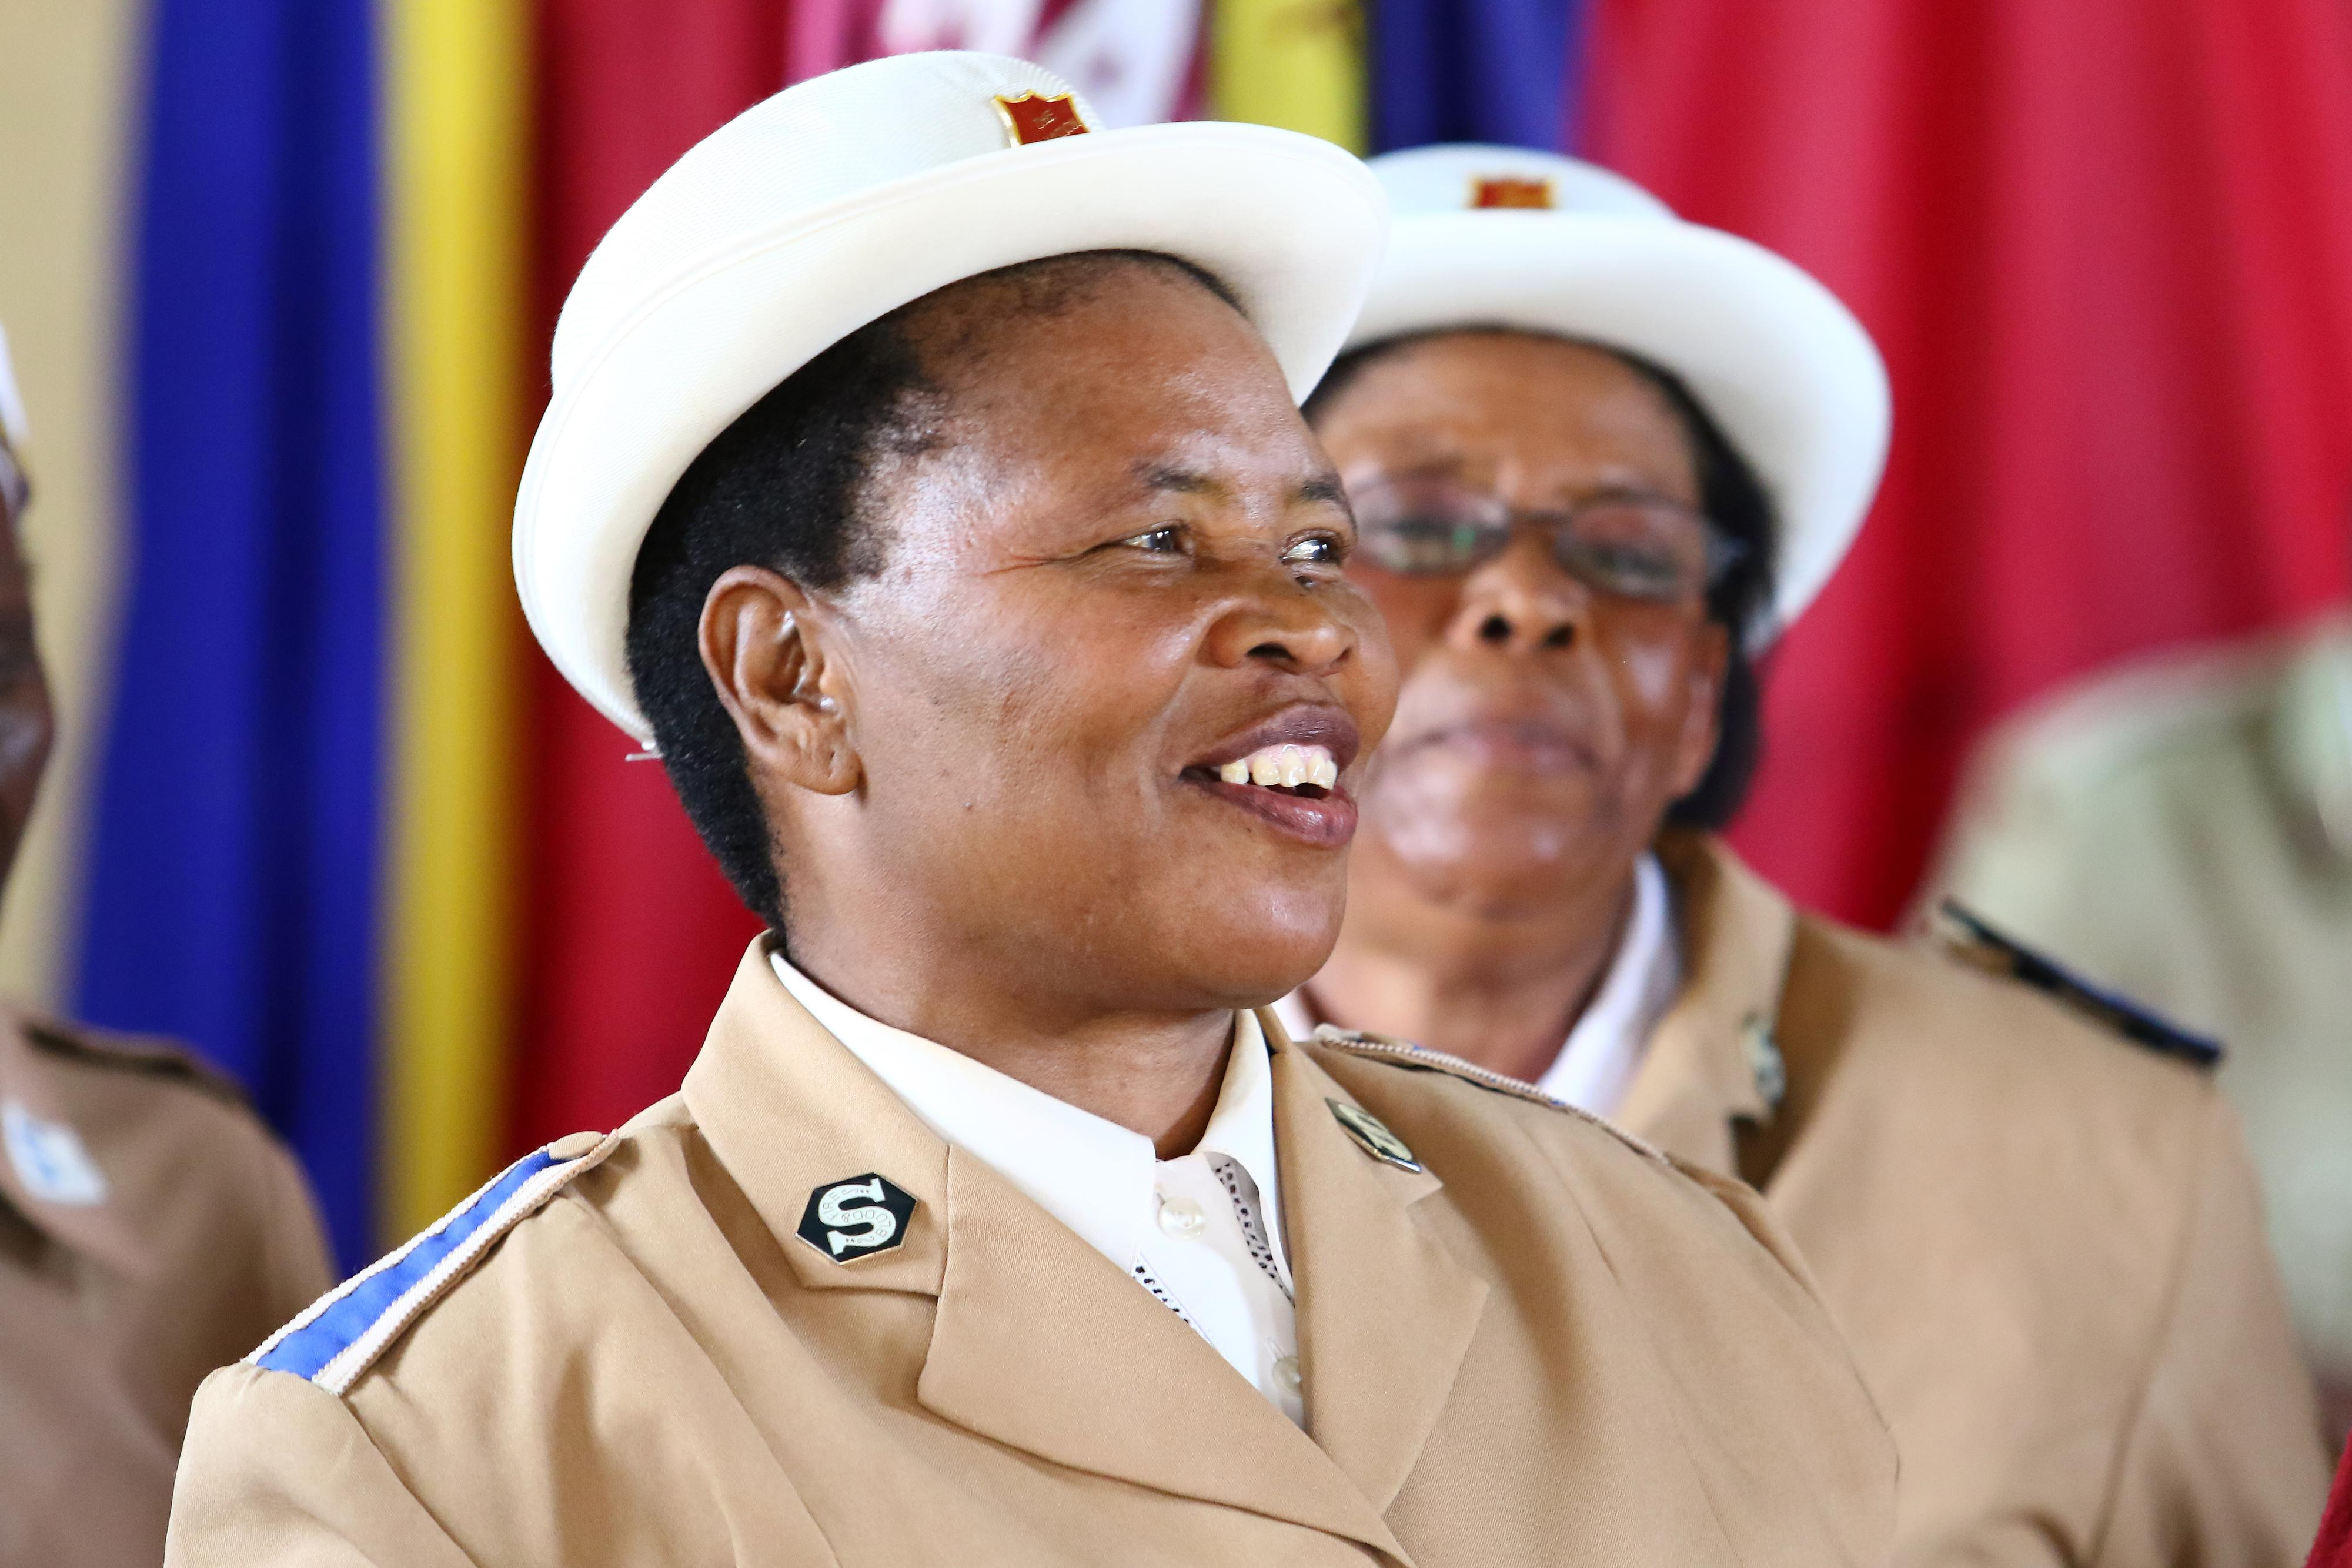 Photo of Salvation Army woman solider smiling at Lusaka Corps in Zambia